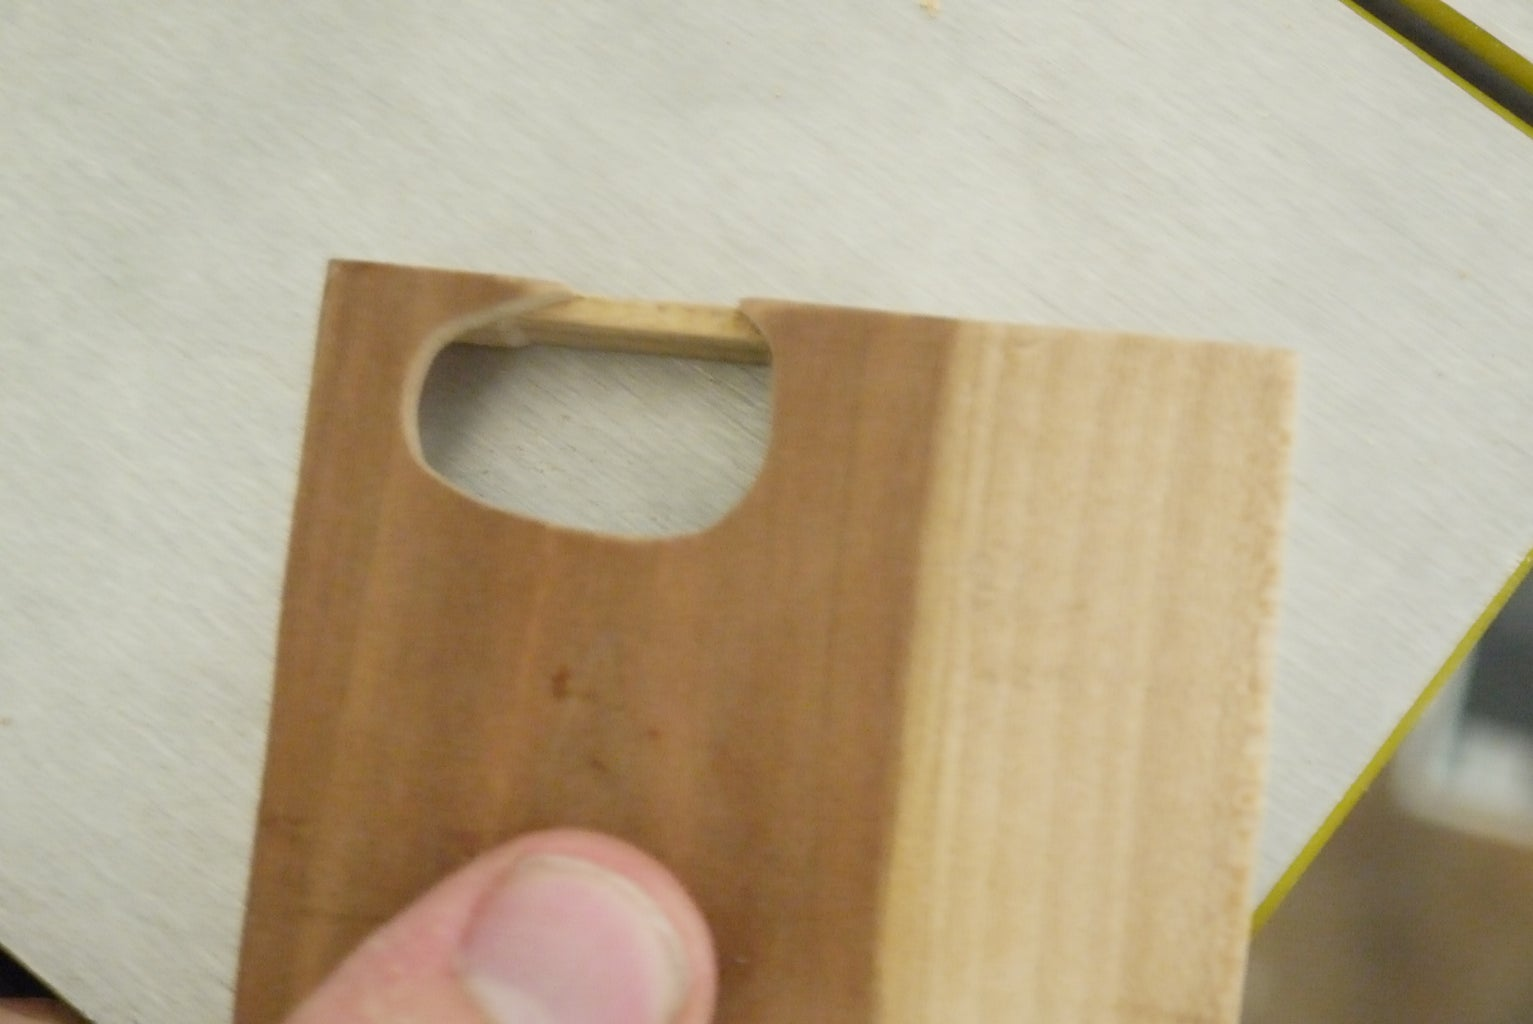 Shape the Lid and Make Camera Opening If Applicable. and Sand!